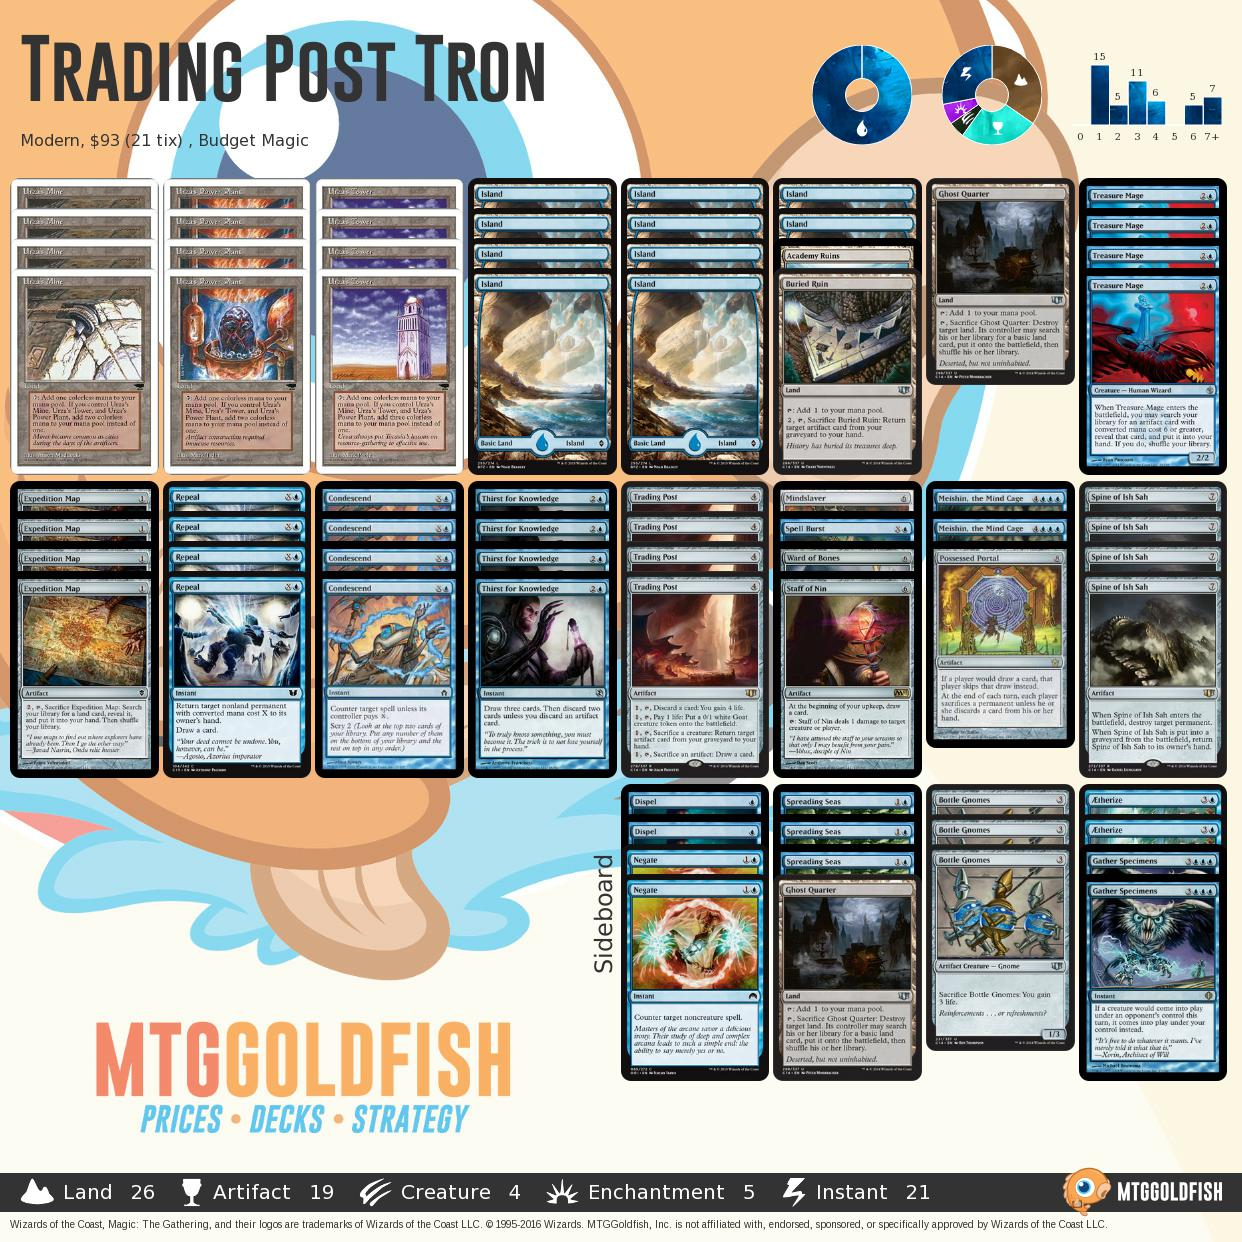 Weekly Update (Jun 19): Budget Trading Post Tron